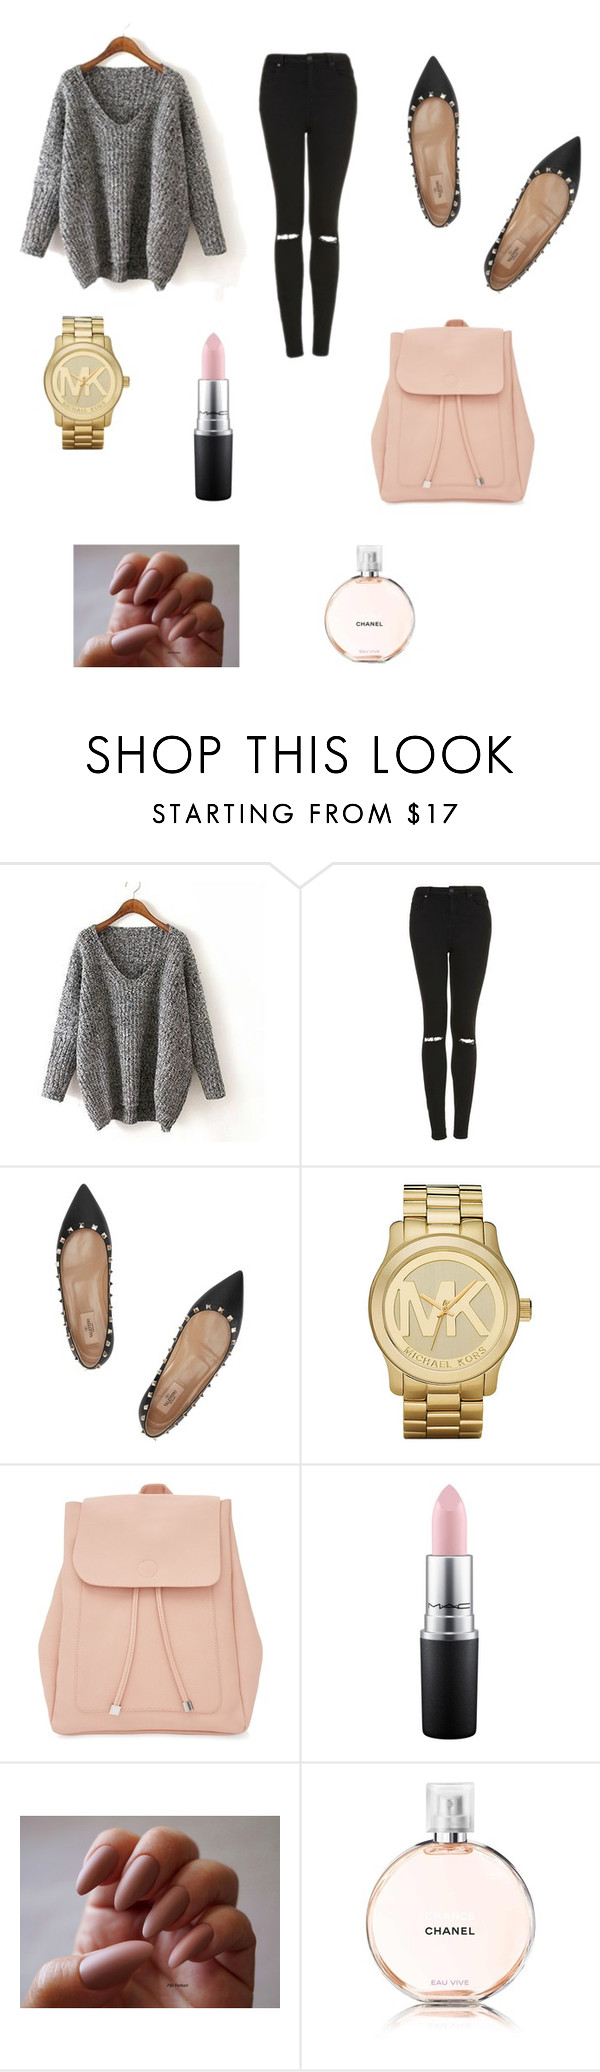 """""""Untitled #84"""" by sadiecoda on Polyvore featuring Topshop, Valentino, Michael Kors, New Look, MAC Cosmetics and Chanel"""